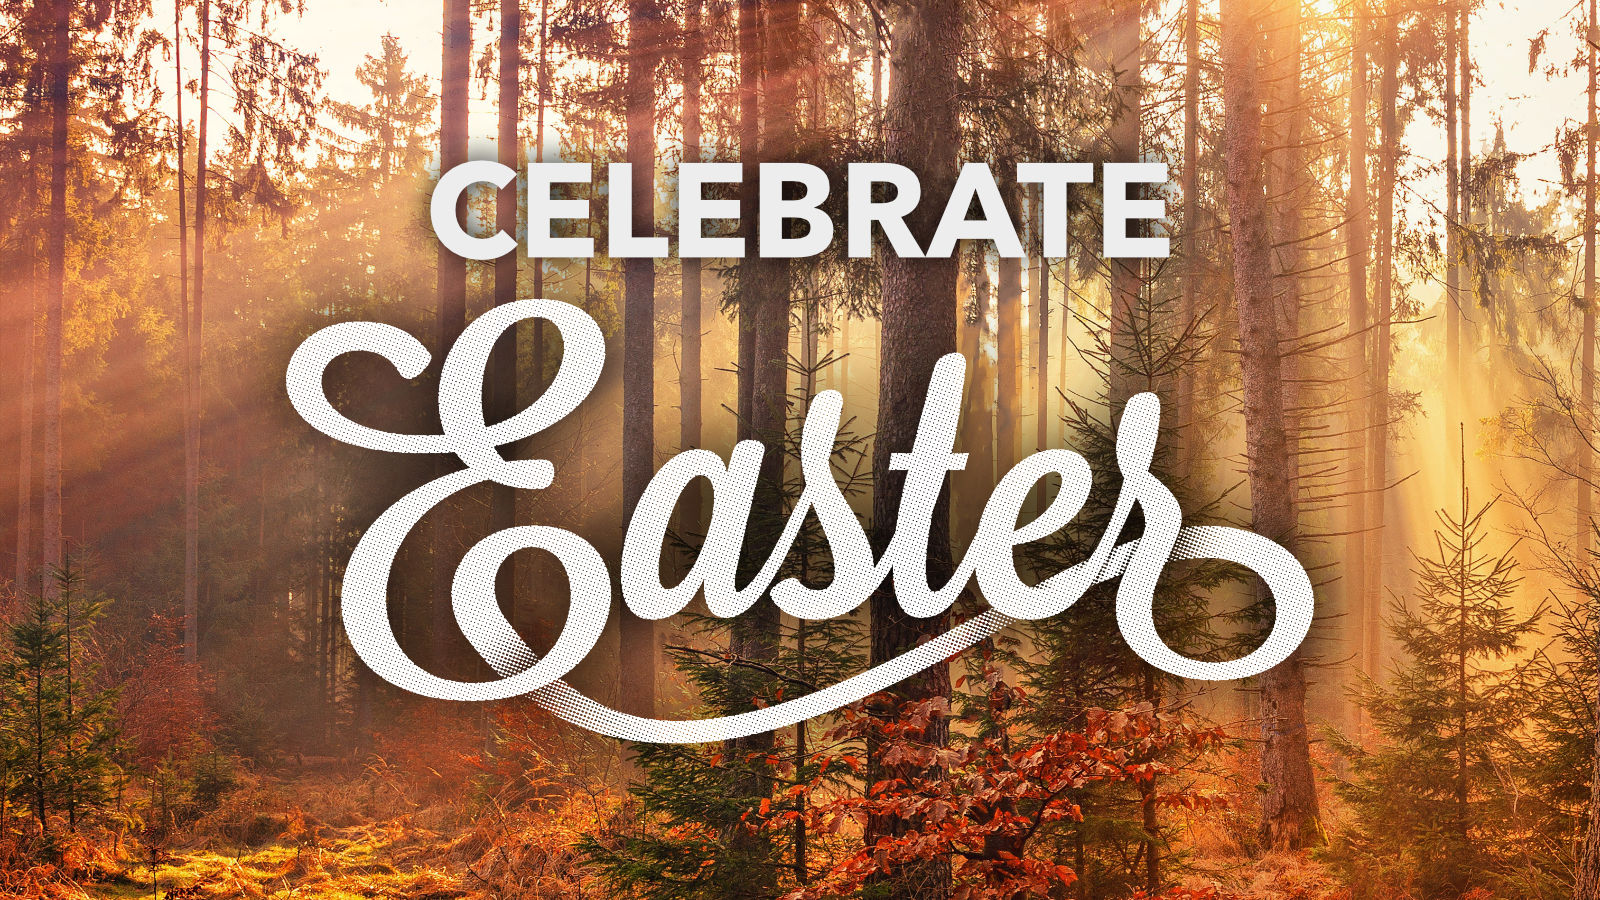 Celebrate Easter graphic.jpg